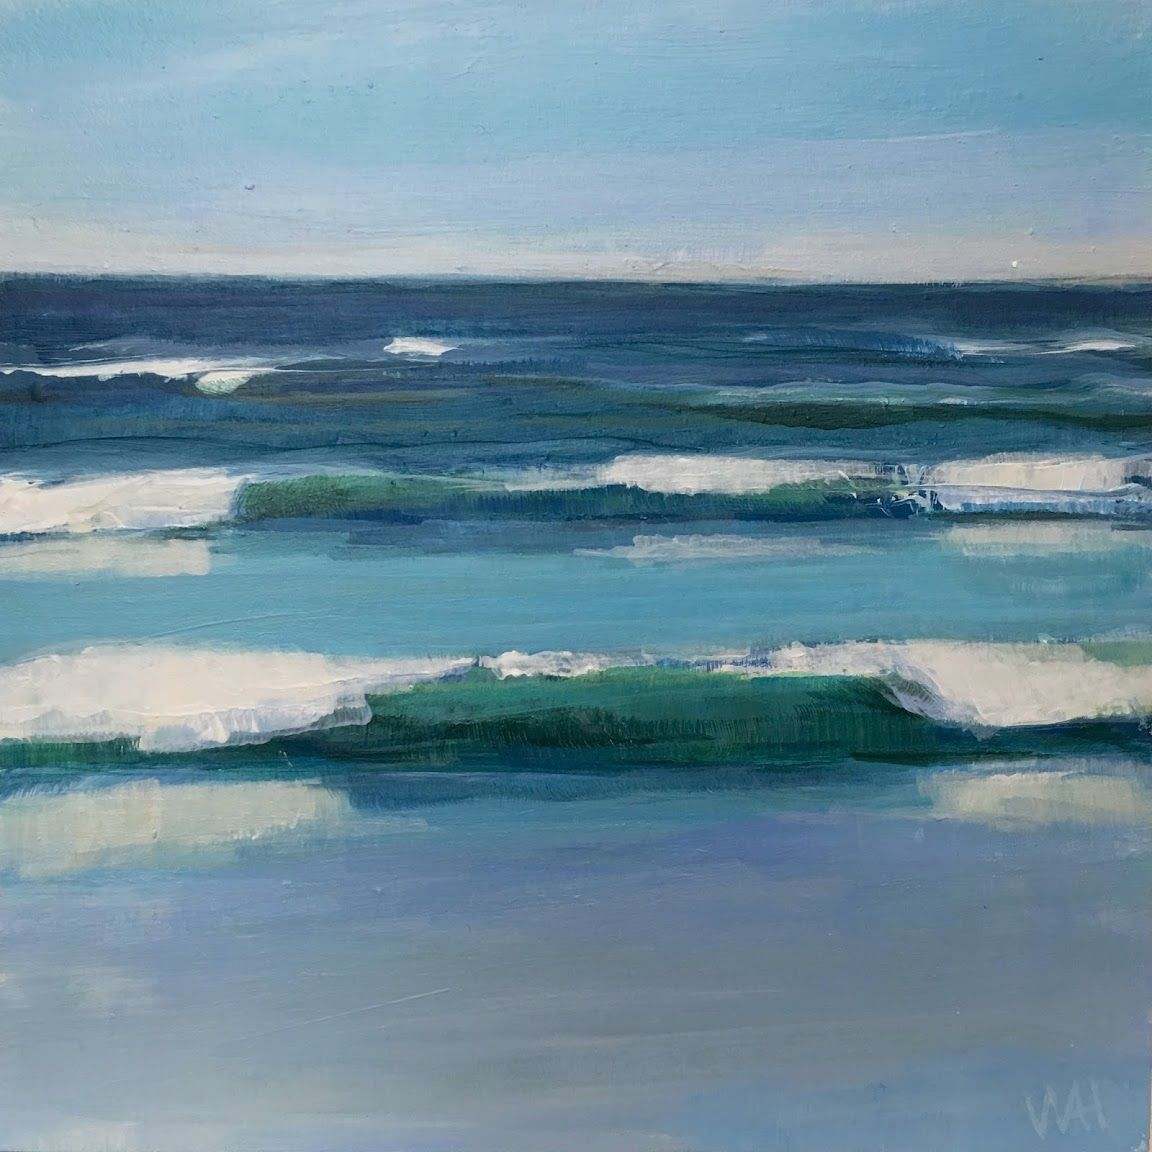 30 Paintings In 30 Days Day 26 Parade With Images Image Painting Seascape Paintings Ocean Painting